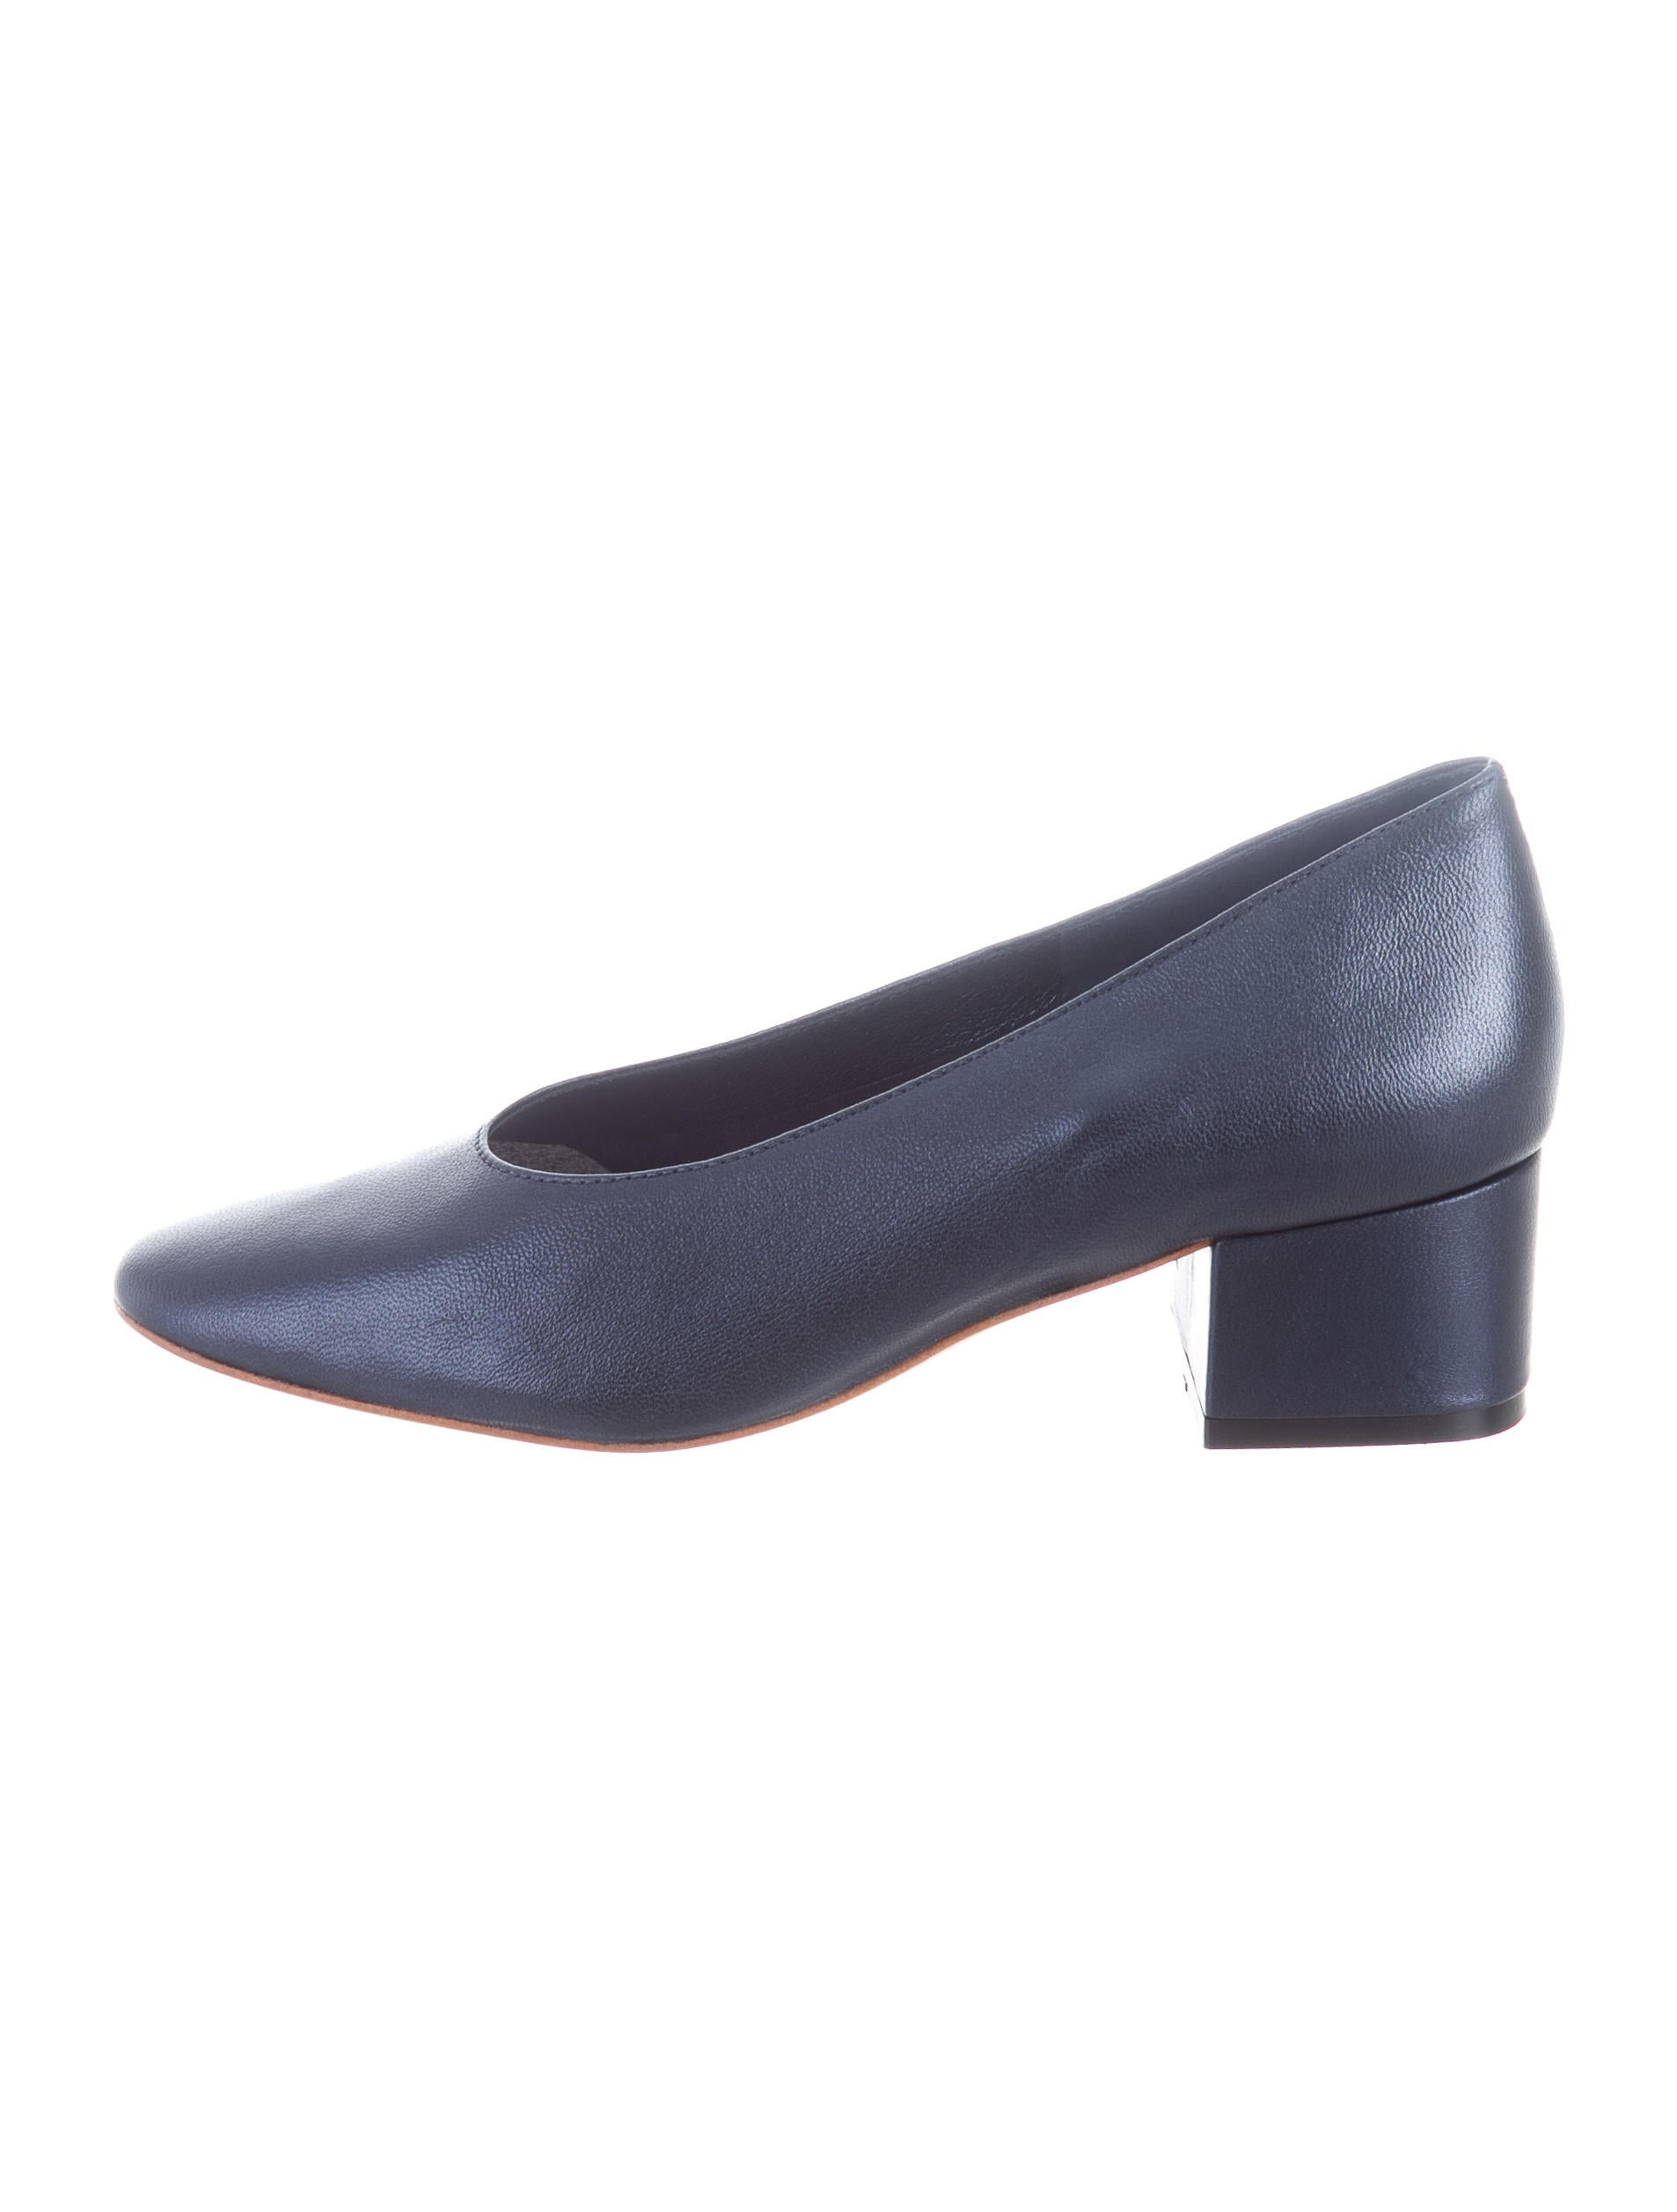 outlet store Loeffler Randall Eclipse Round-Toe Pumps w/ Tags excellent online cheap sale geniue stockist free shipping sale online comfortable cheap online l2hTrlU